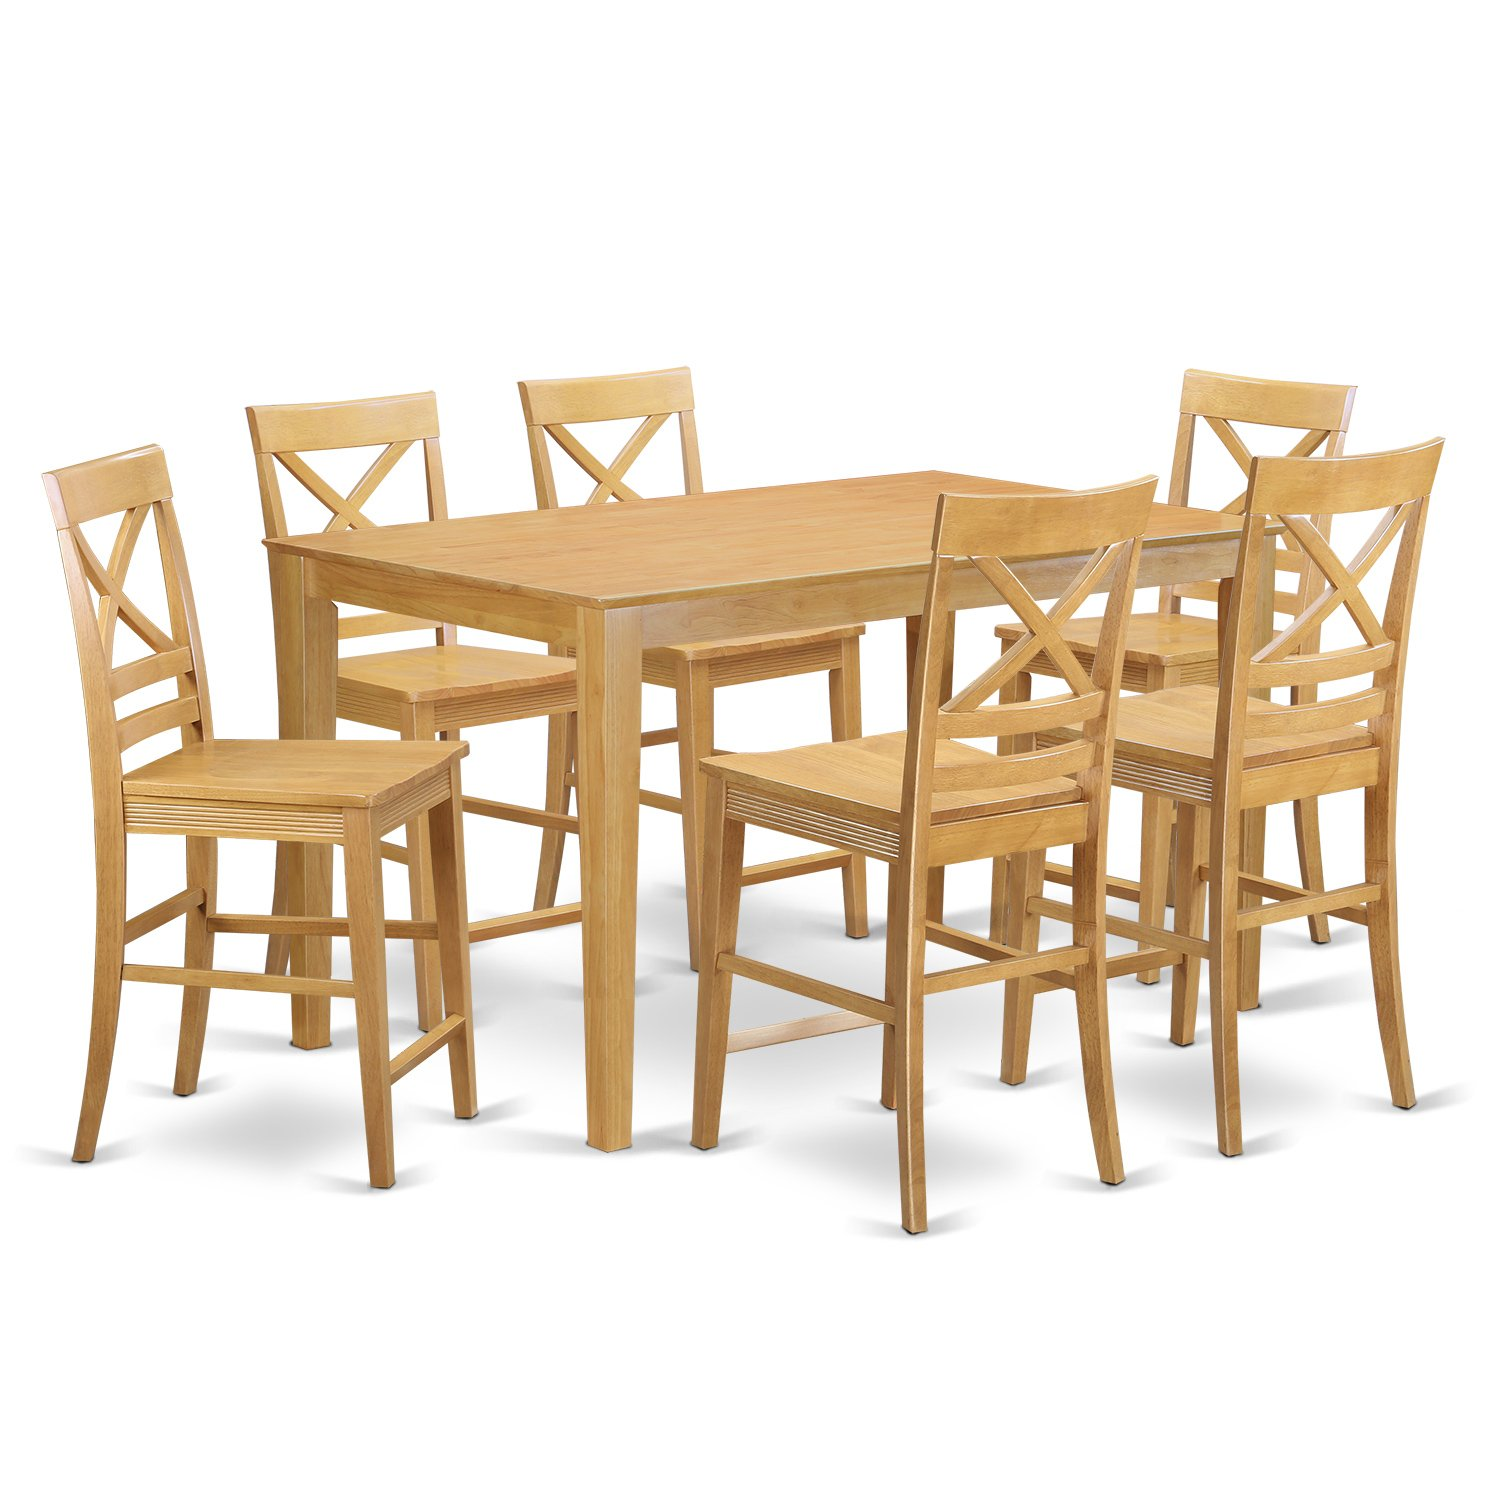 East West Furniture CAQU7H-OAK-W 7 Piece Counter Height Table and 6 Stool Set